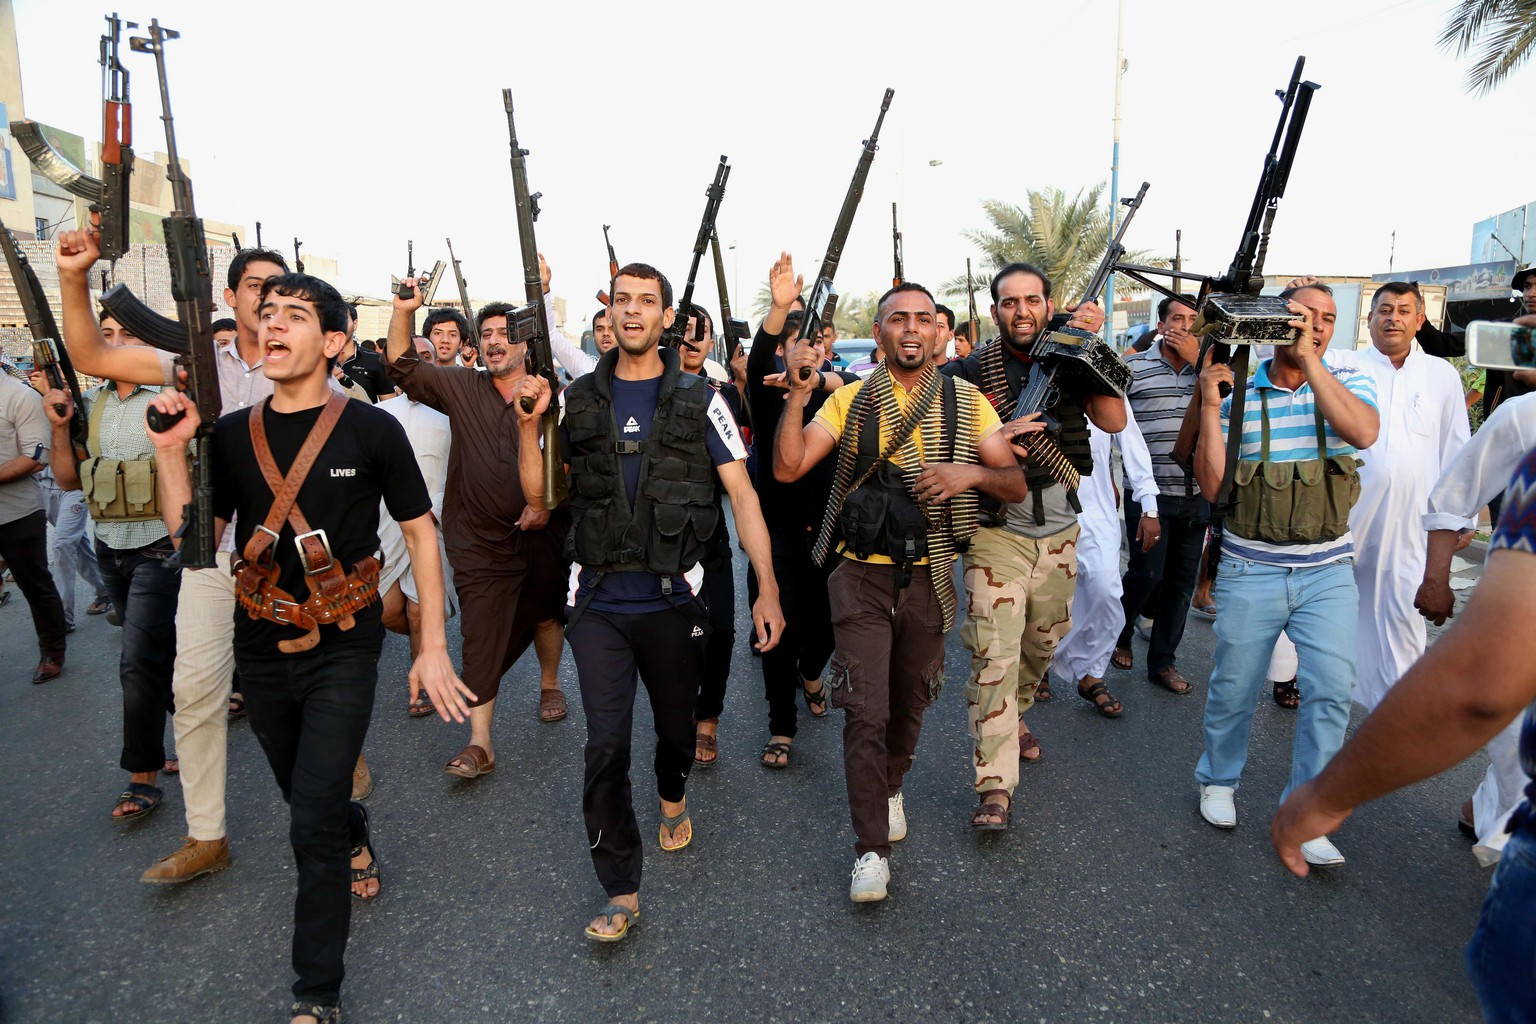 Iraqi Shiite tribal fighters deploy with their weapons while chanting slogans against the al-Qaida inspired Islamic State of Iraq and the Levant (ISIL), to help the military, which defends the capital in Baghdad's Sadr City, Iraq, Friday, June 13, 2014. The tribal leaders met in Sadr city on Friday and declared their readiness along with their tribesmen to take up arms against the al-Qaida inspired group that has made advances in Iraq's Sunni heartland .(AP Photo/ Karim Kadim)